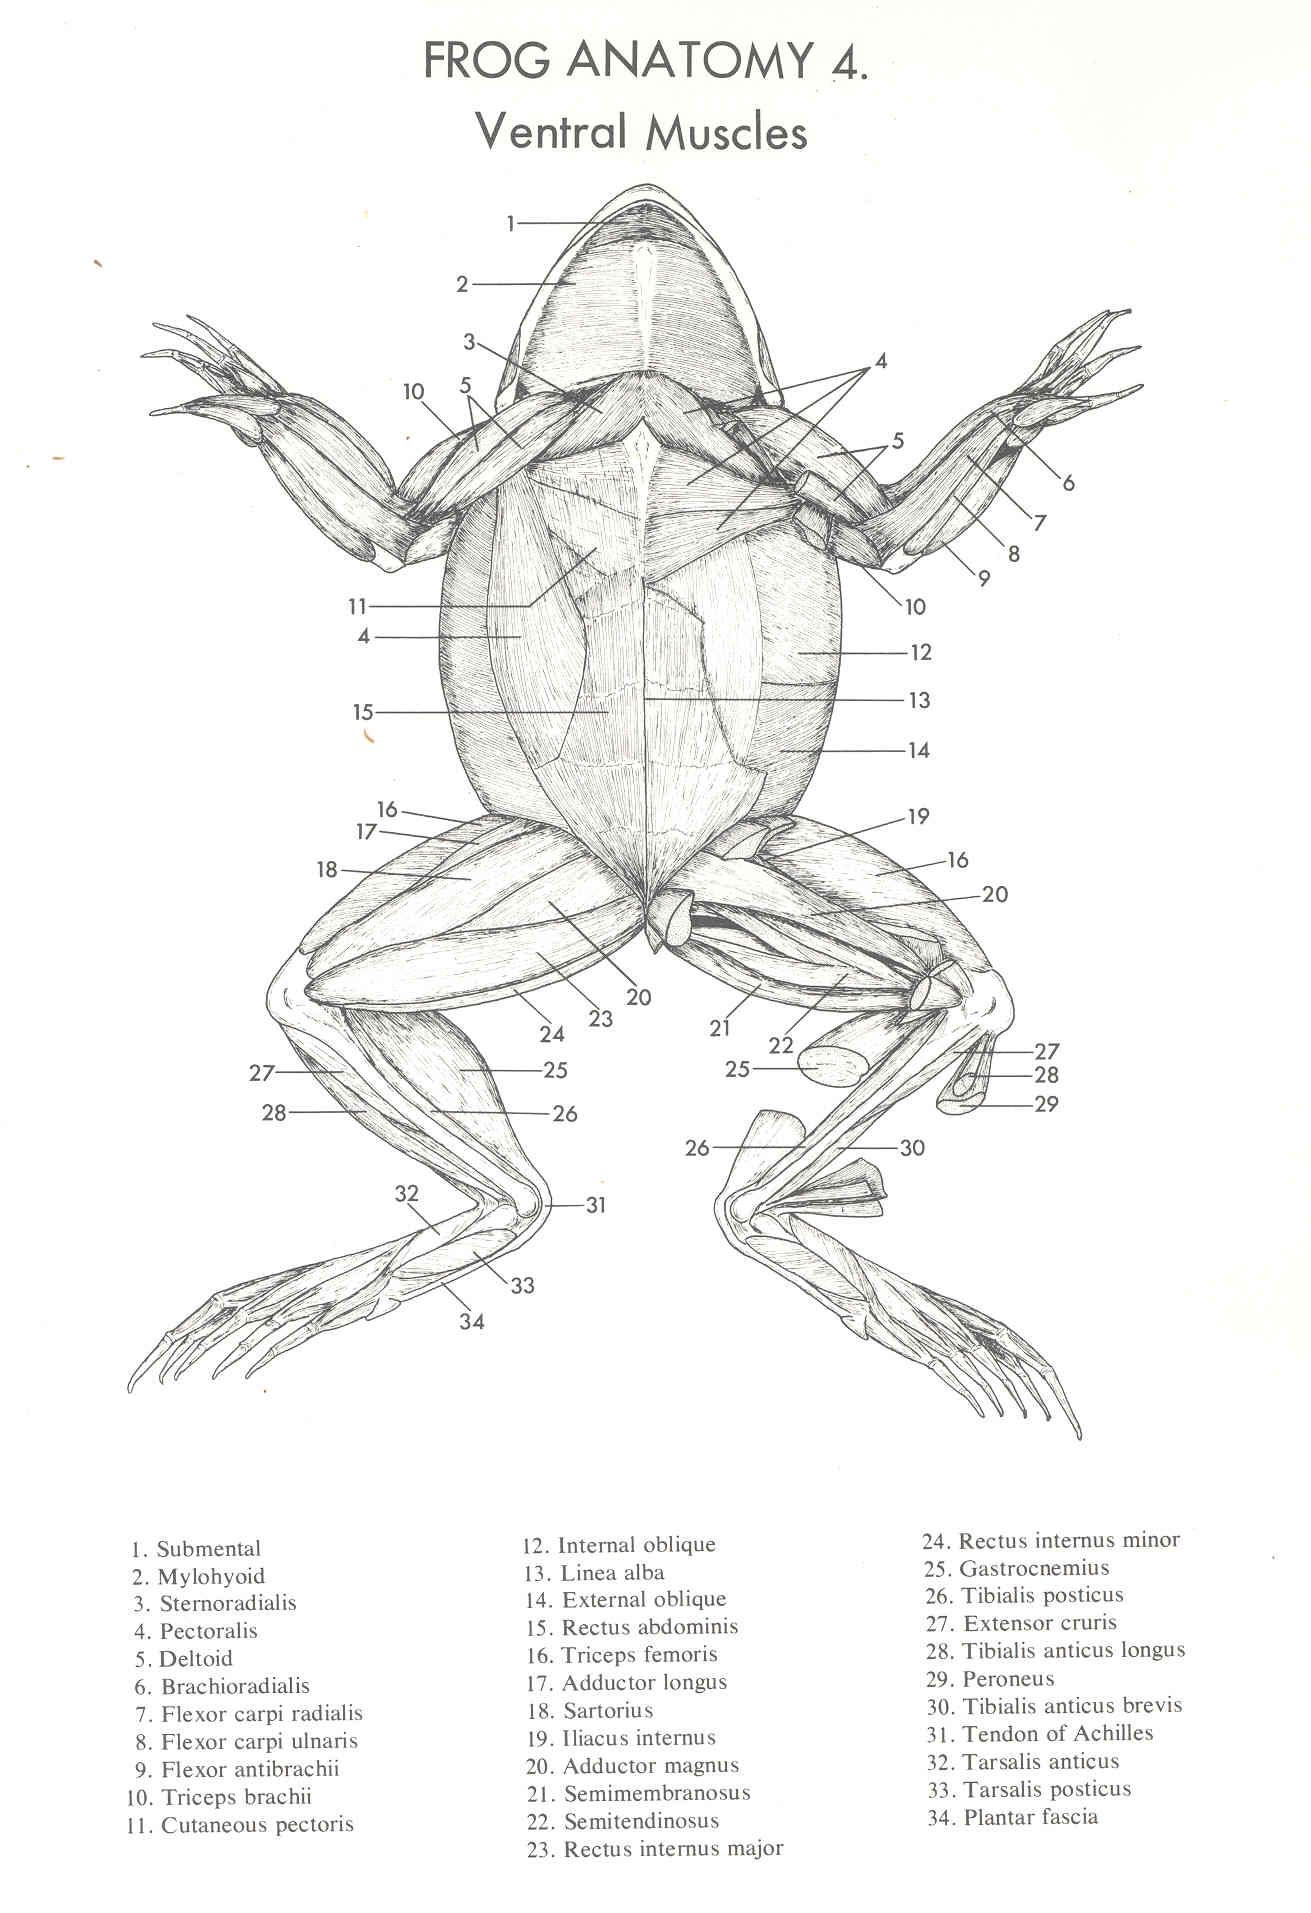 frog muscle physiology As the voltage was increased from threshold to maximum voltage, there was a  greater force in the muscle contraction once the maximum.